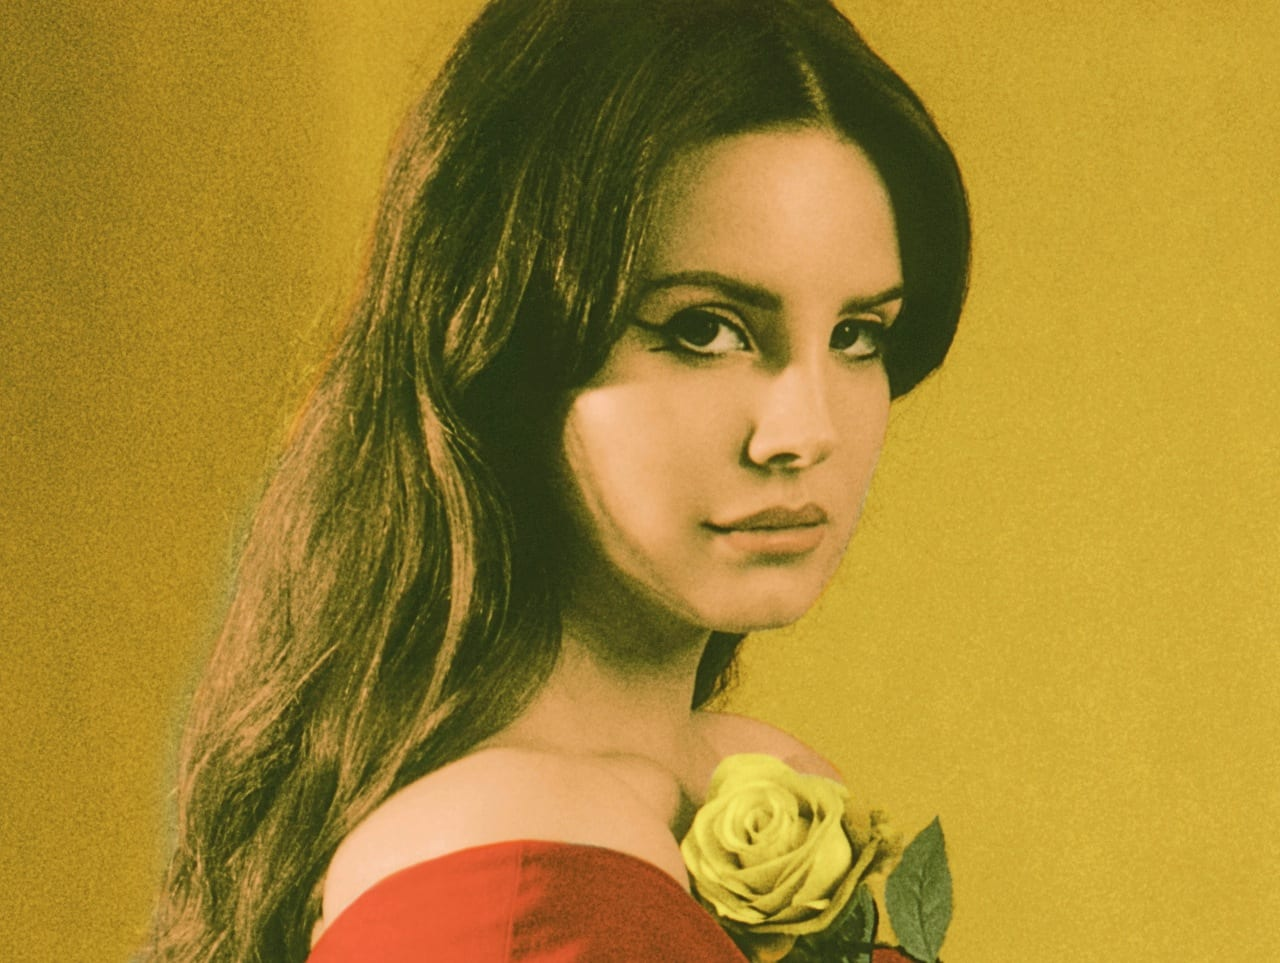 Lana Del Rey Music To Watch Boys To 2015